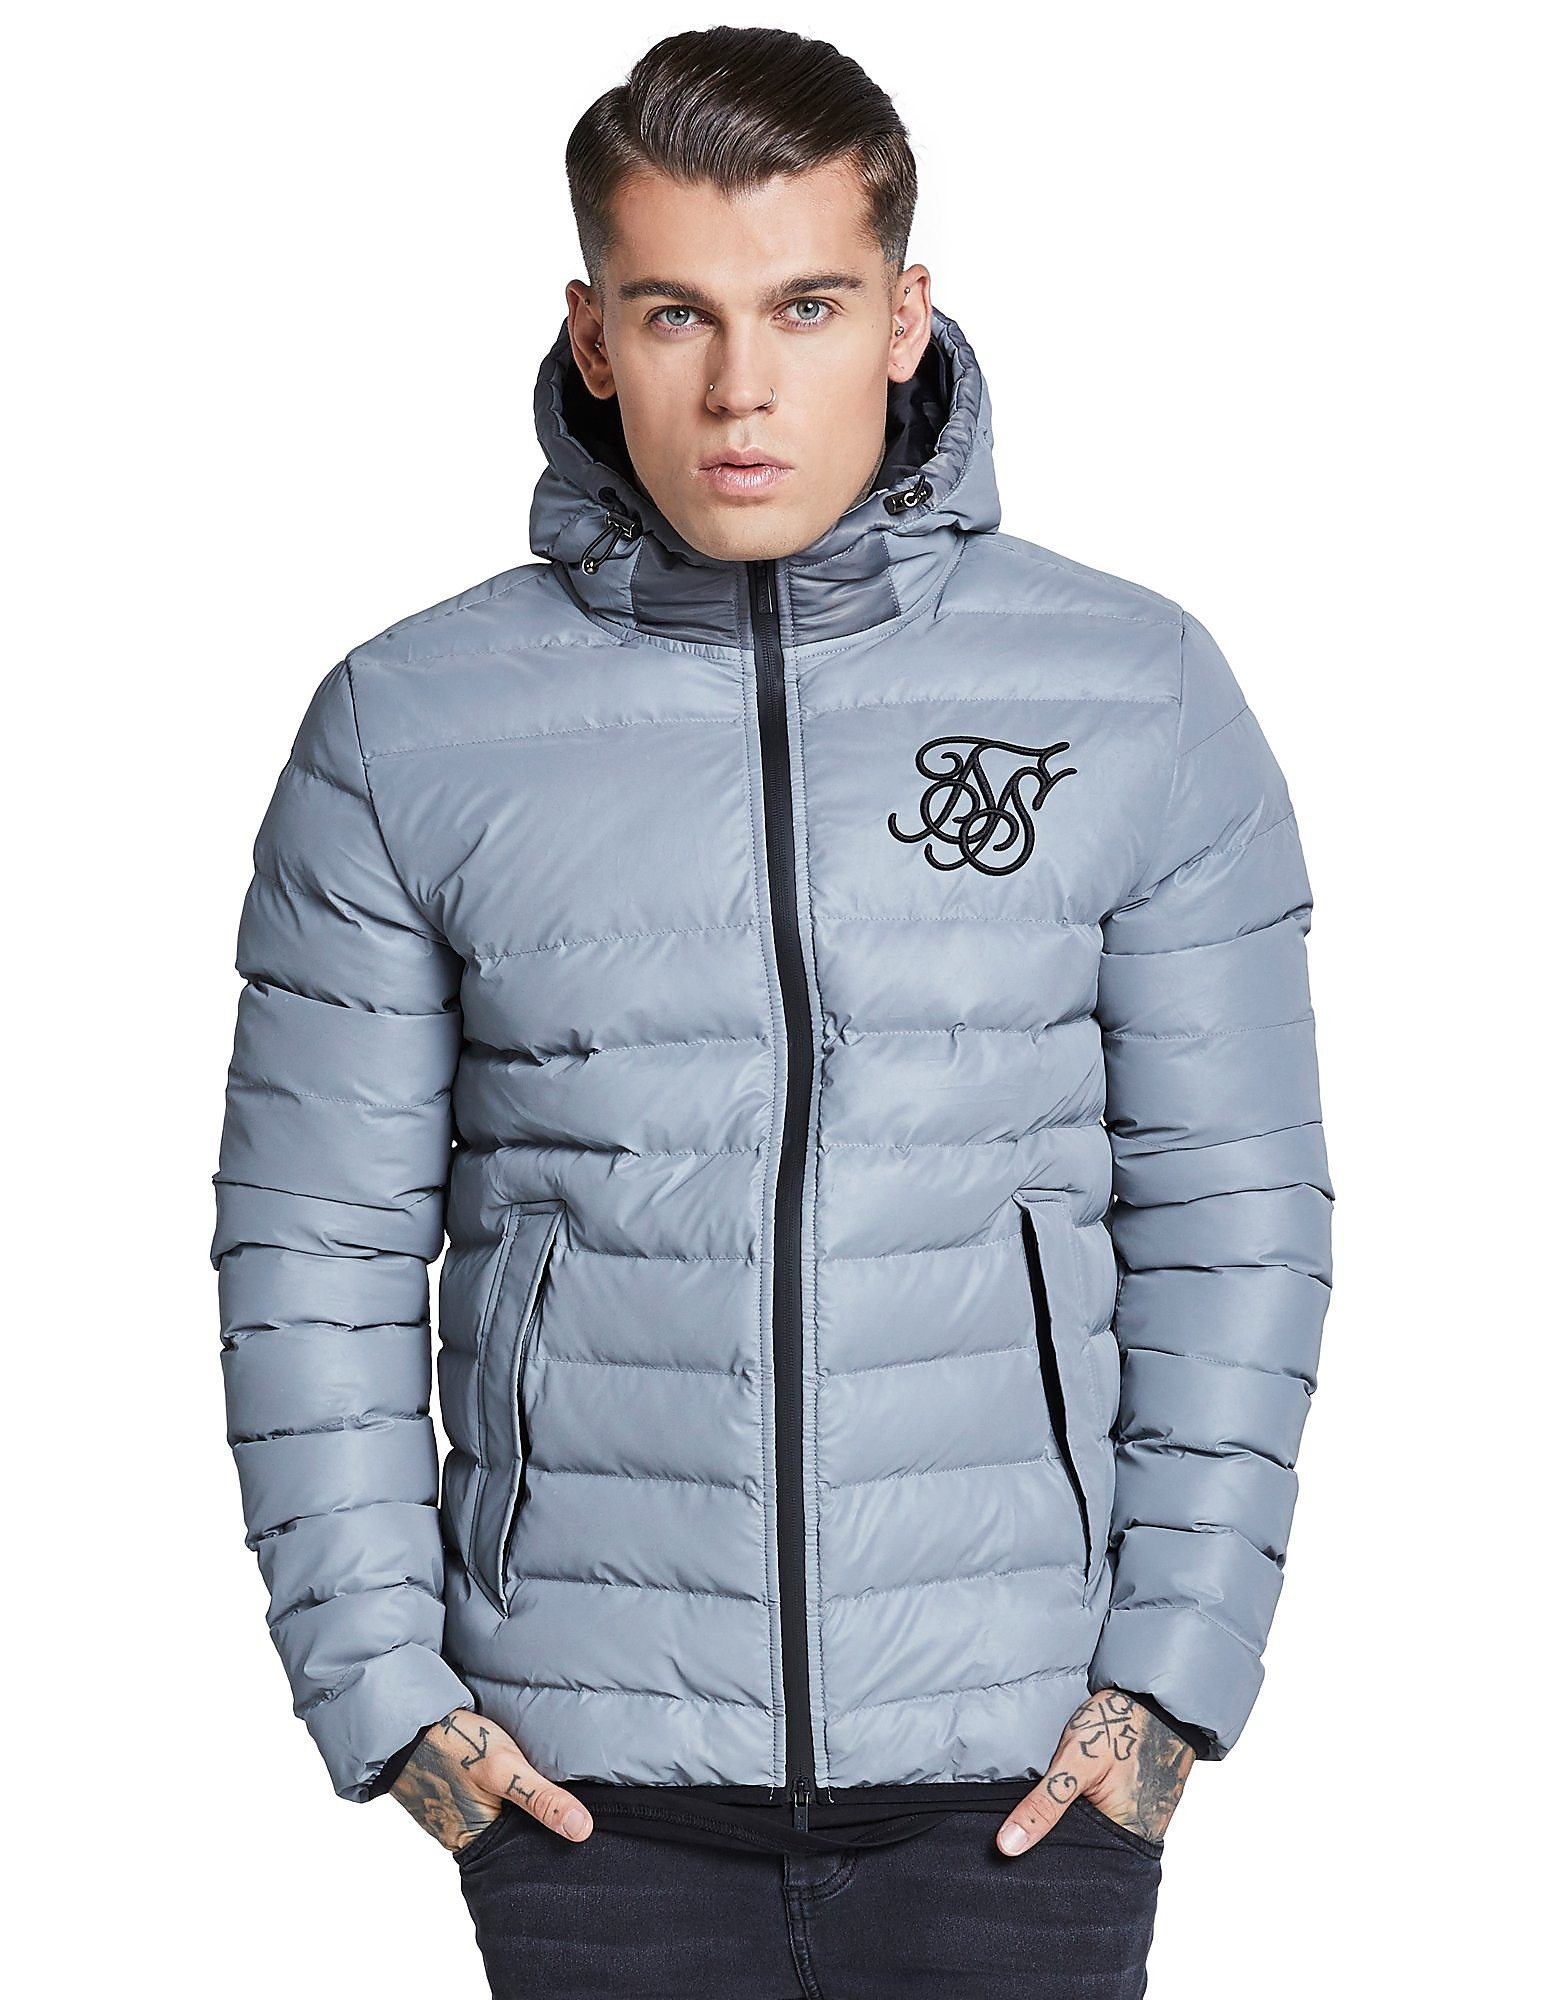 SikSilk Reflective Bomber Jacket